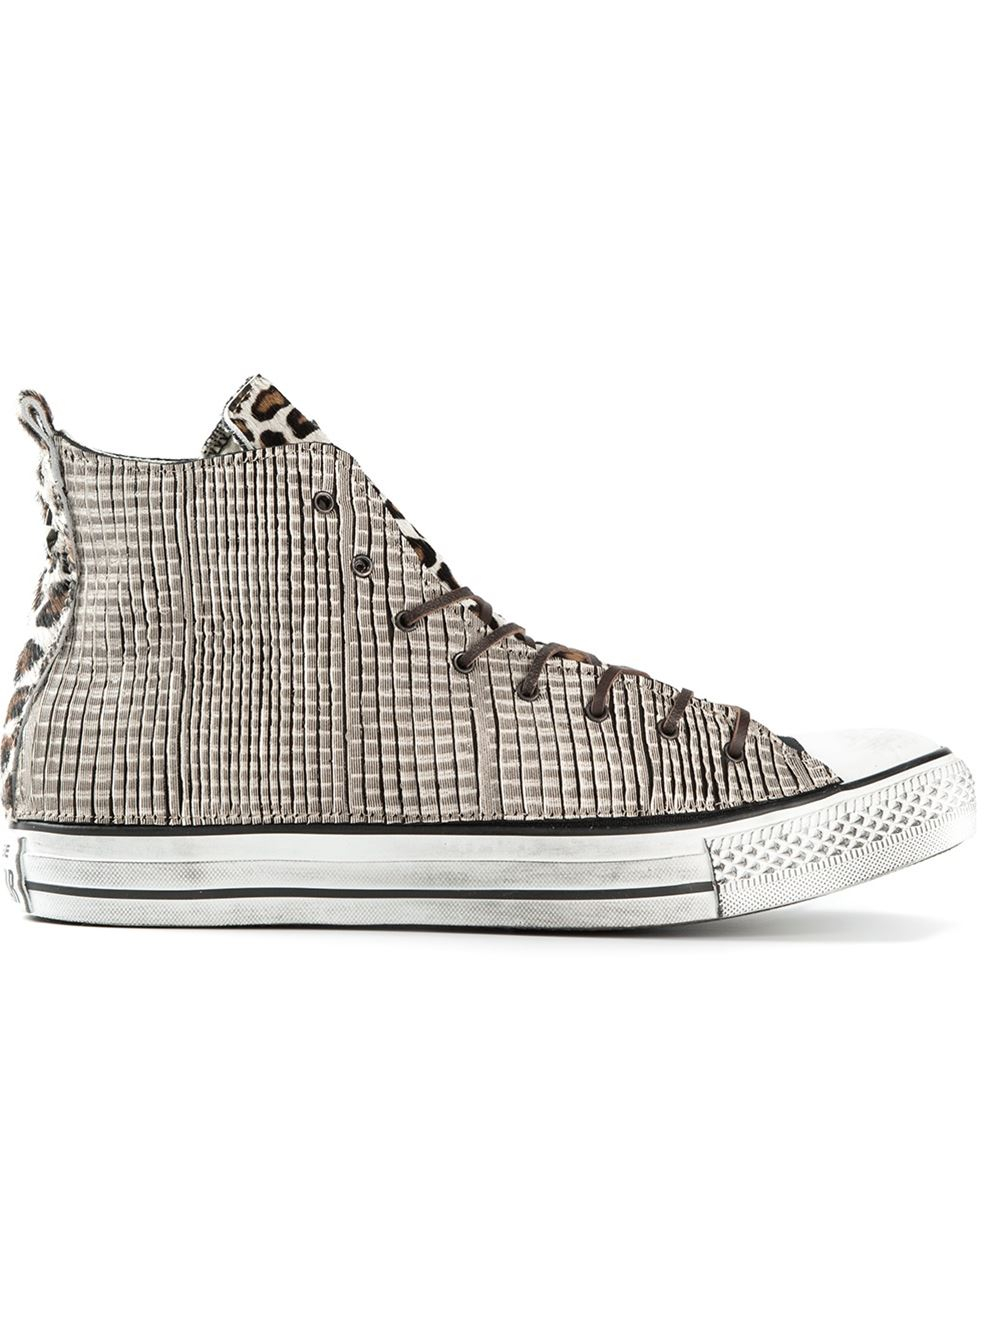 184b245c9d4a Lyst - Converse  Chuck Taylor All Star  Leopard Print Sneakers in ...